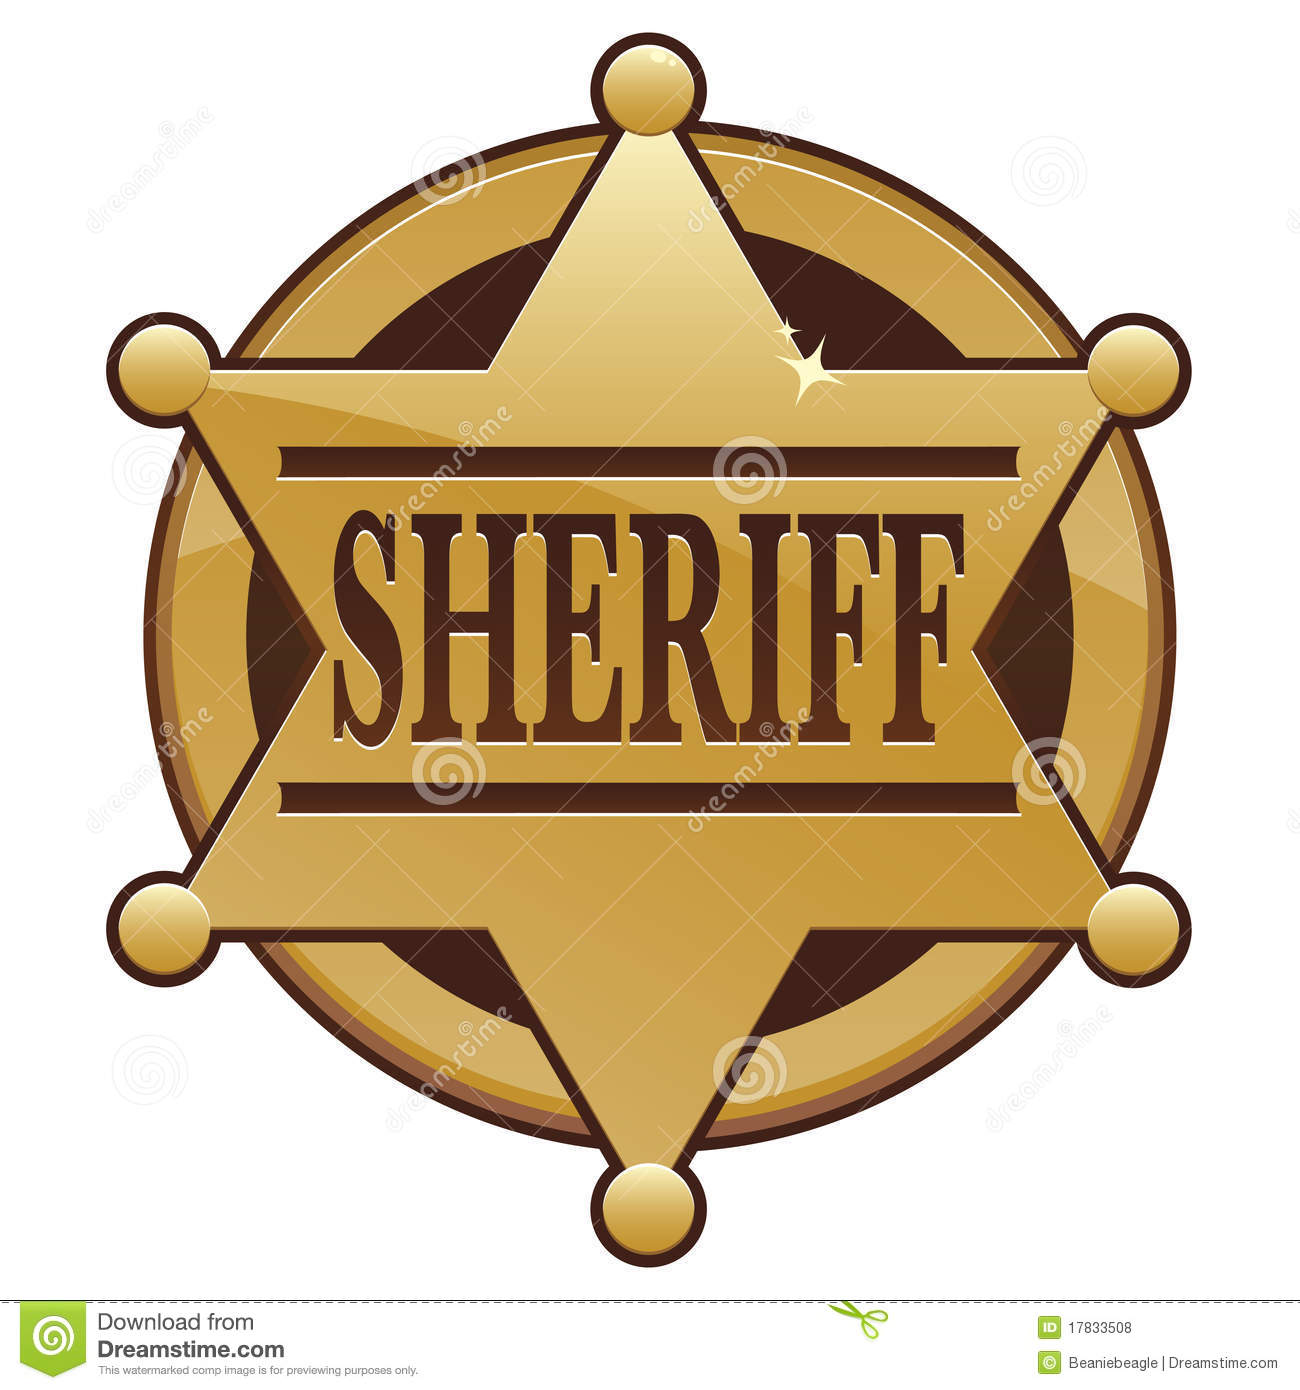 sheriff badge clipart clipart suggest sheriff's badge clip art sheriff badge clipart black and white